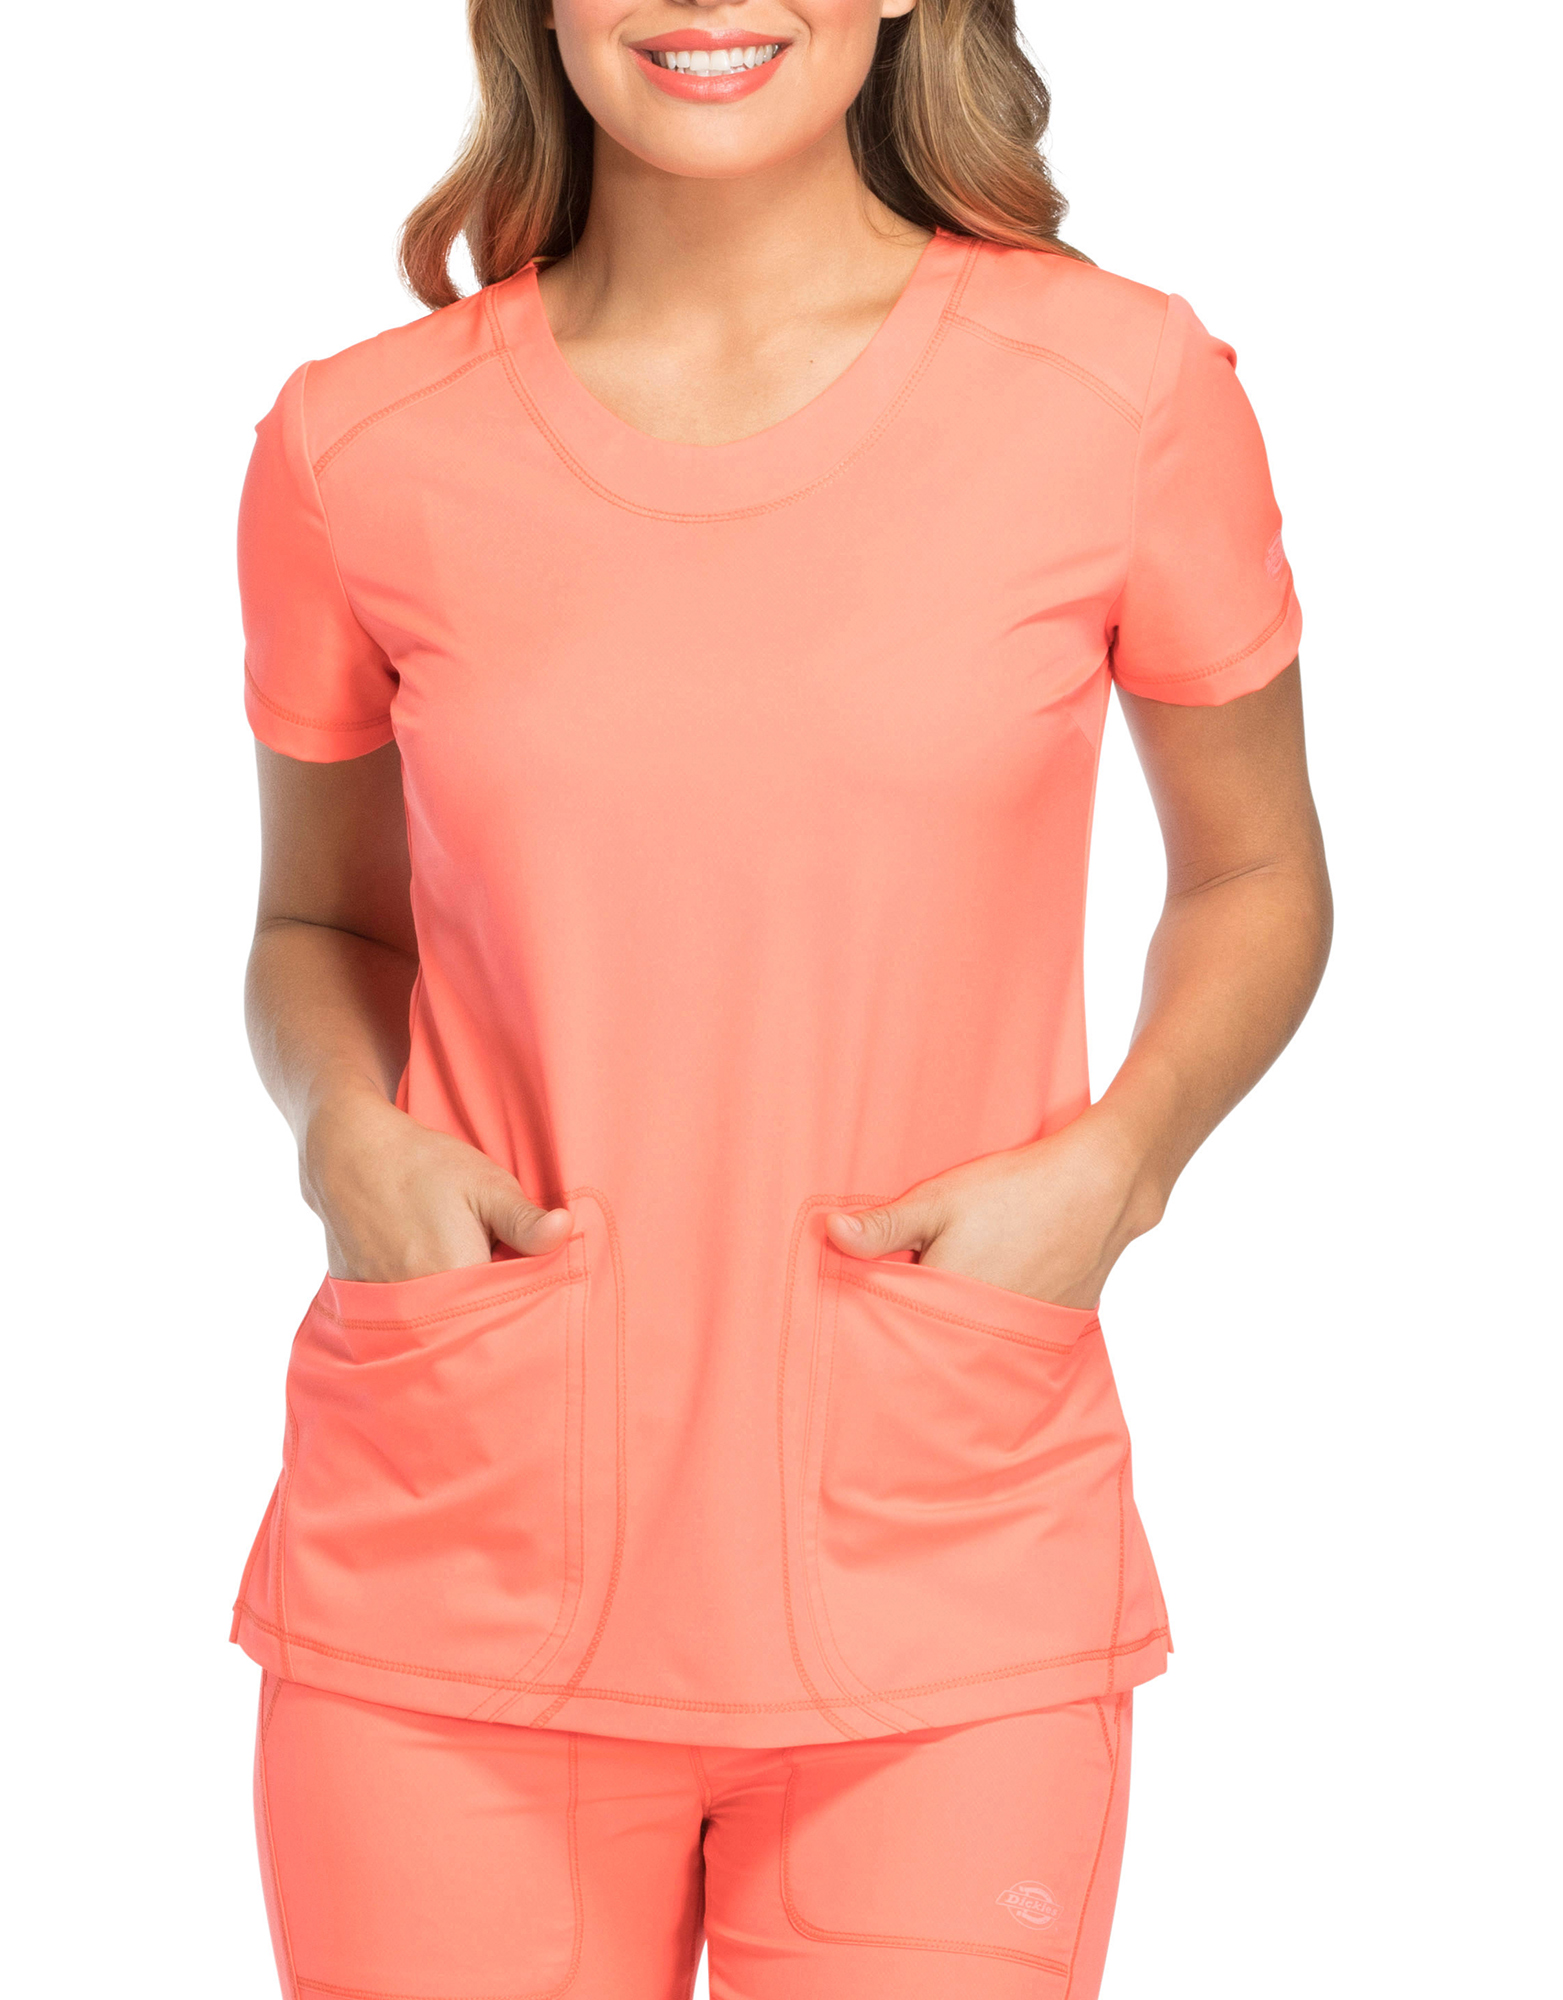 Women's Dynamix Rounded V-Neck Scrub Top - Coral Orange (VCL)